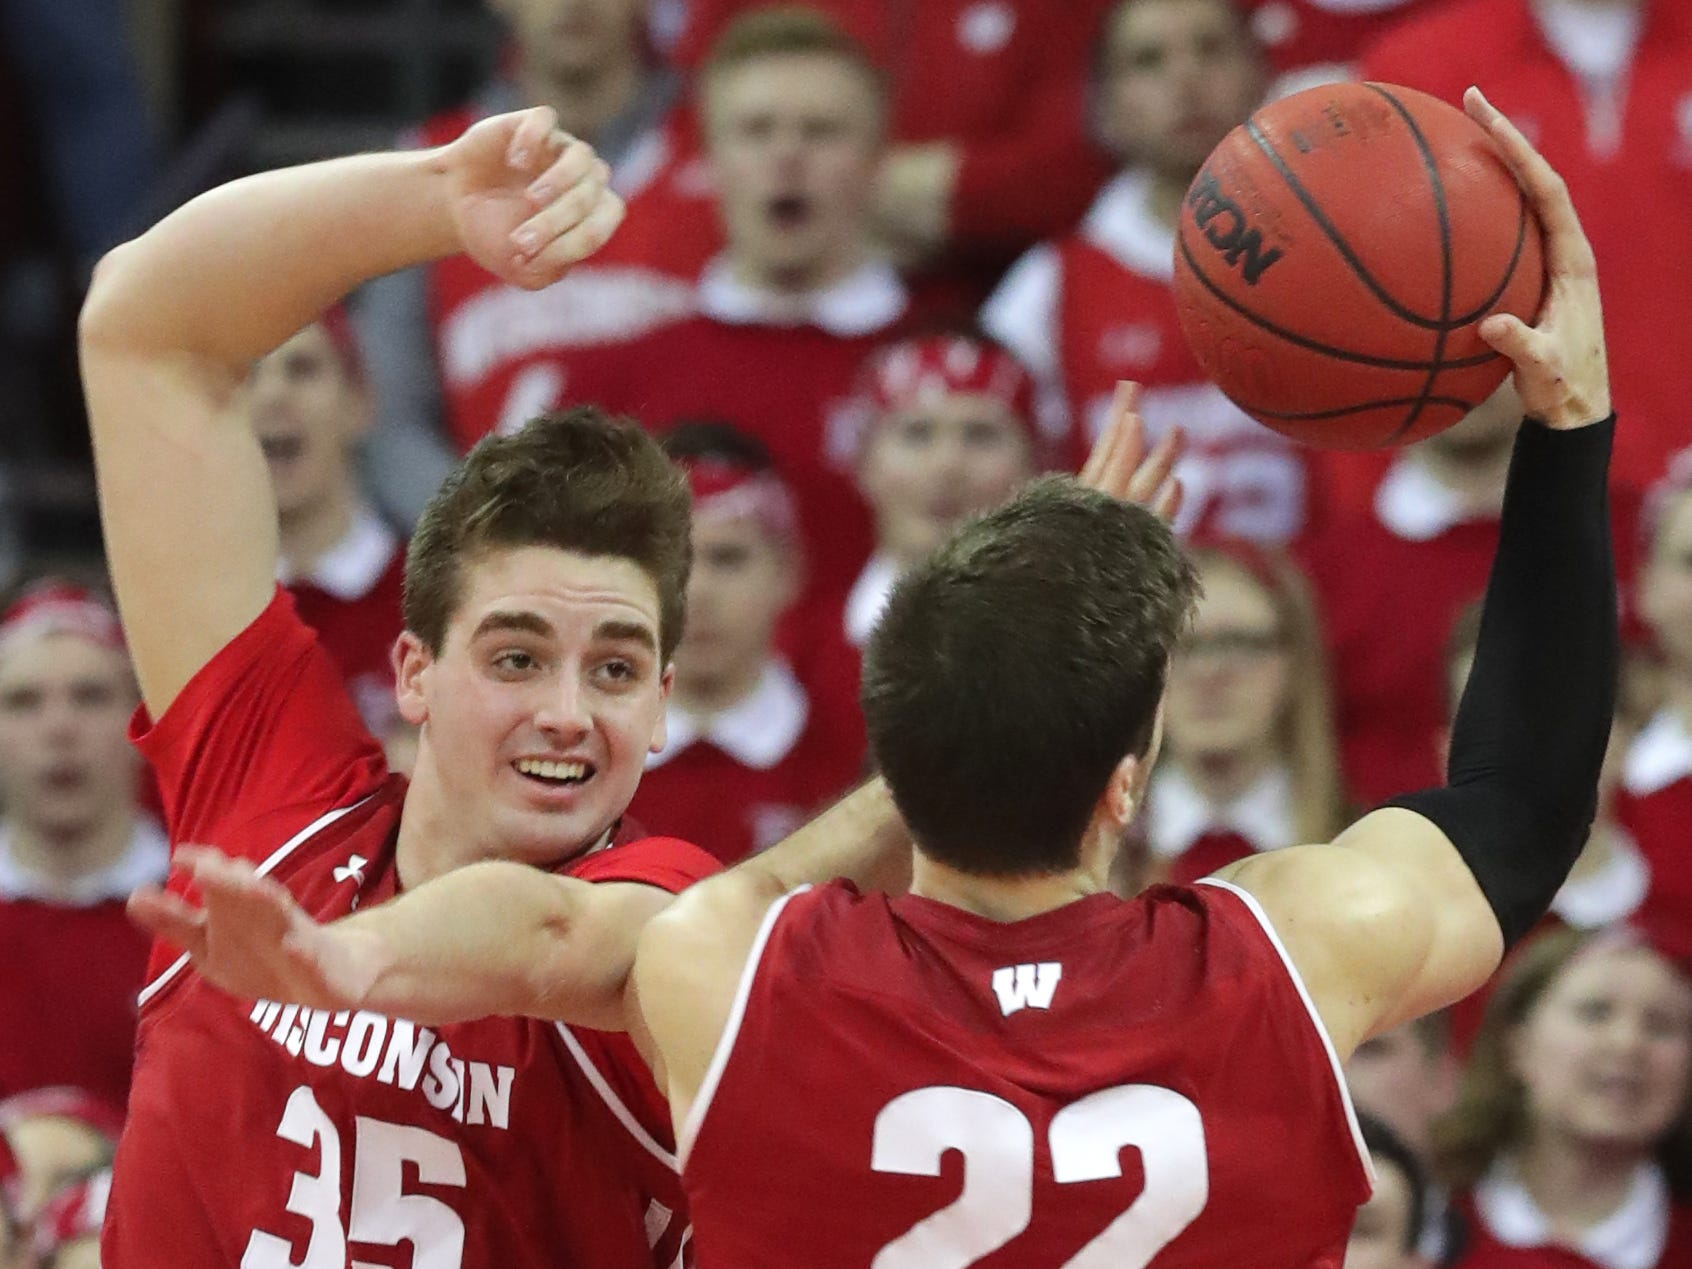 Wisconsin forward Nate Reuvers directs a rebound to forward Ethan Happ.